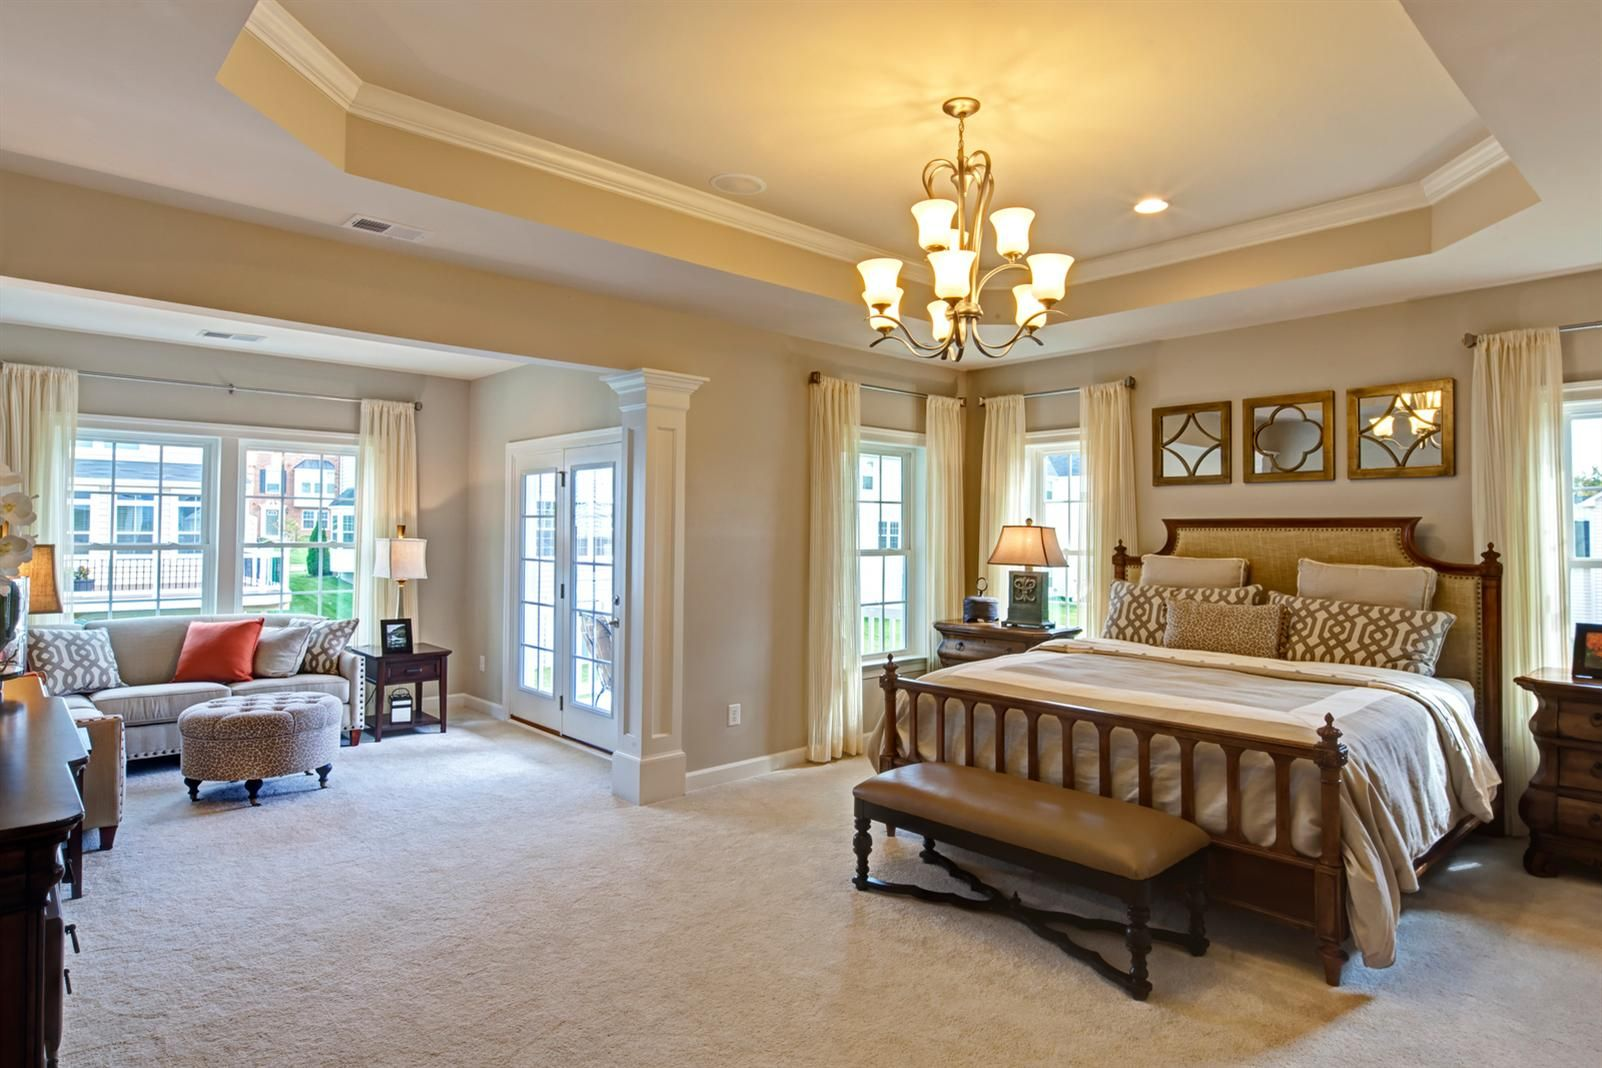 New luxury river hill overlook in clarksville md nvhomes also bed rh pinterest